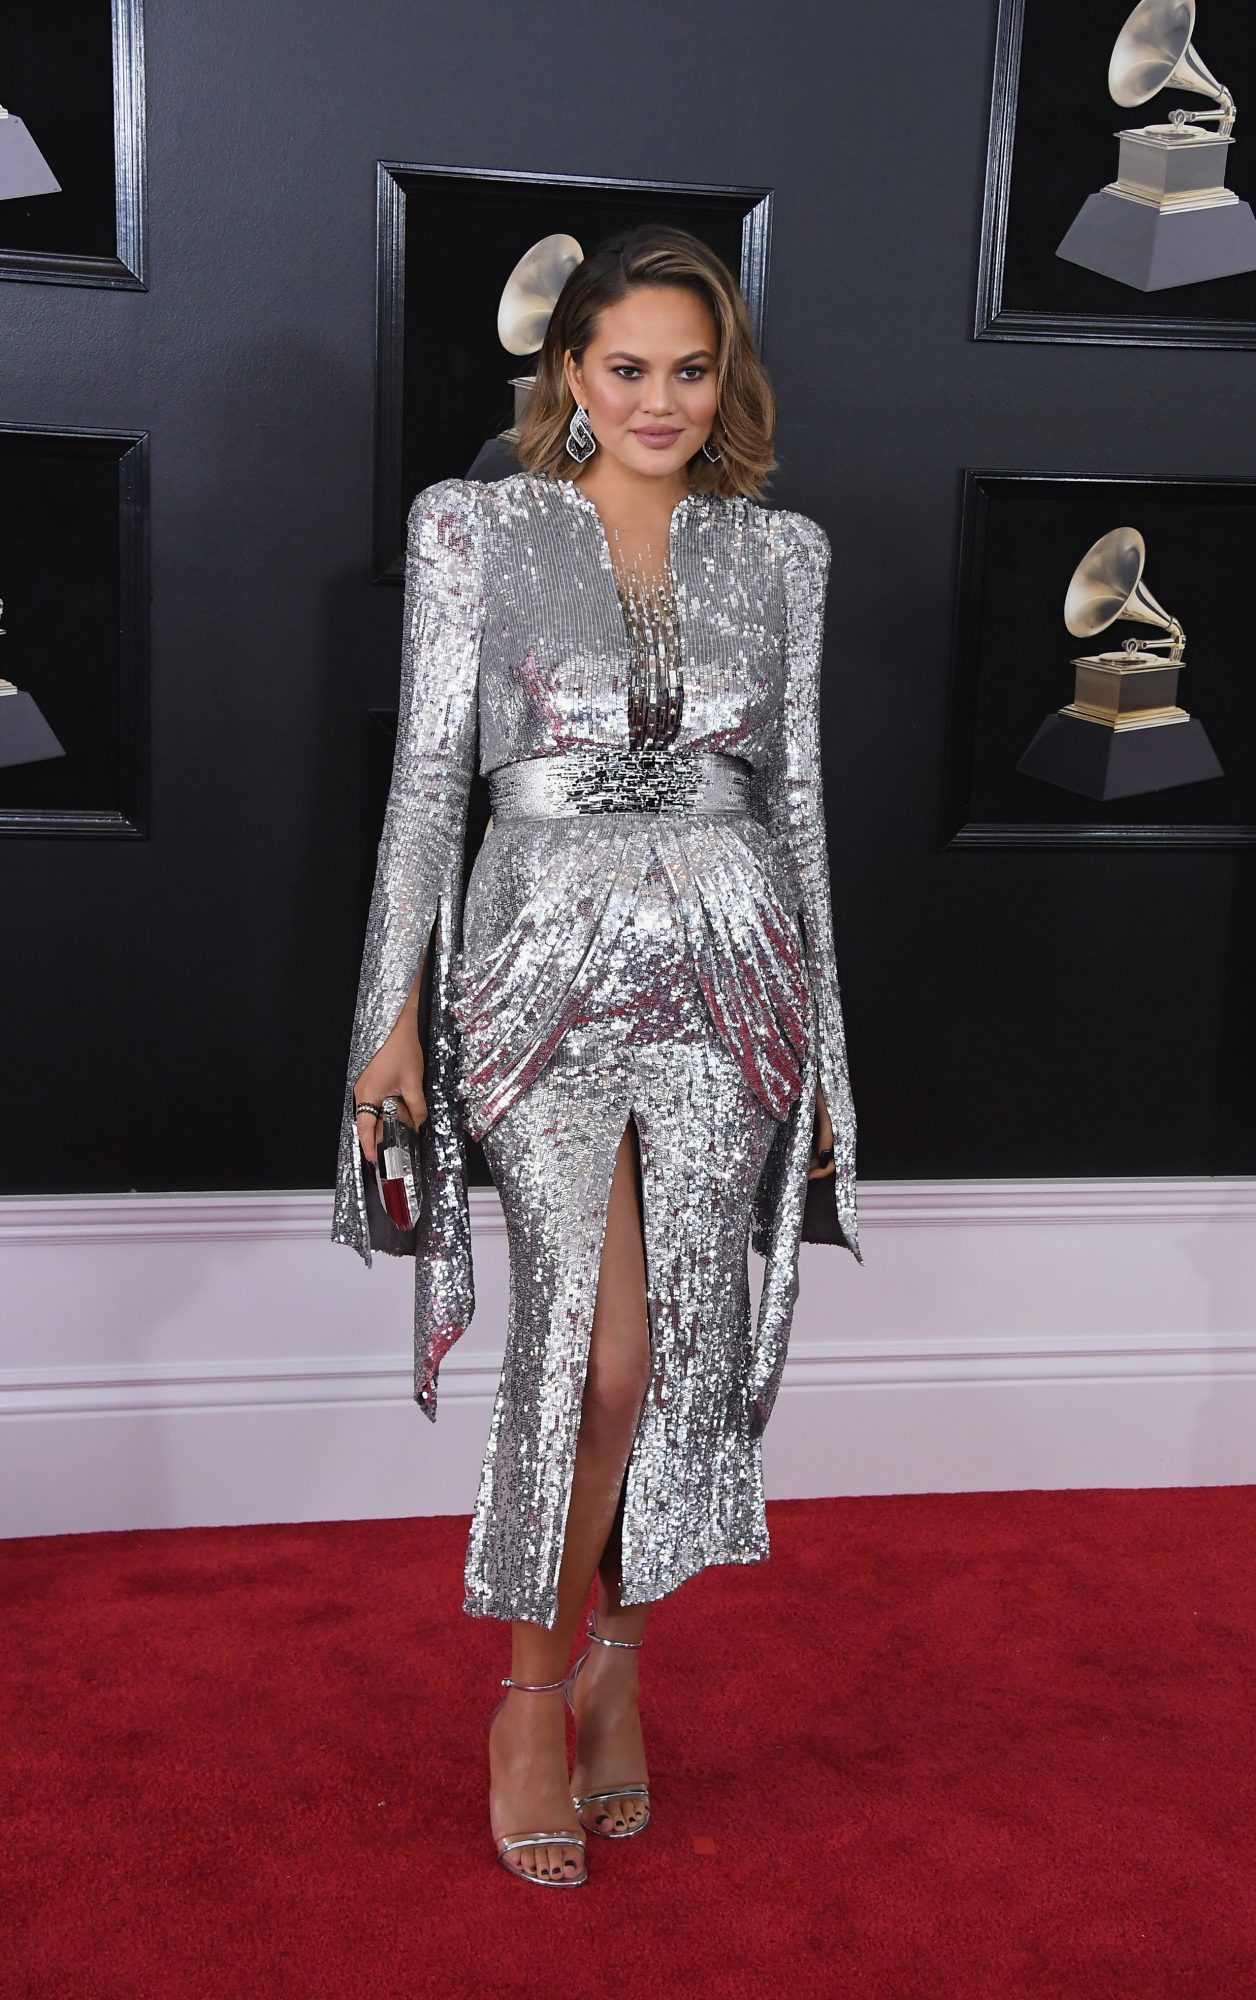 Chrissy Teigen Pregnant at Grammy Awards